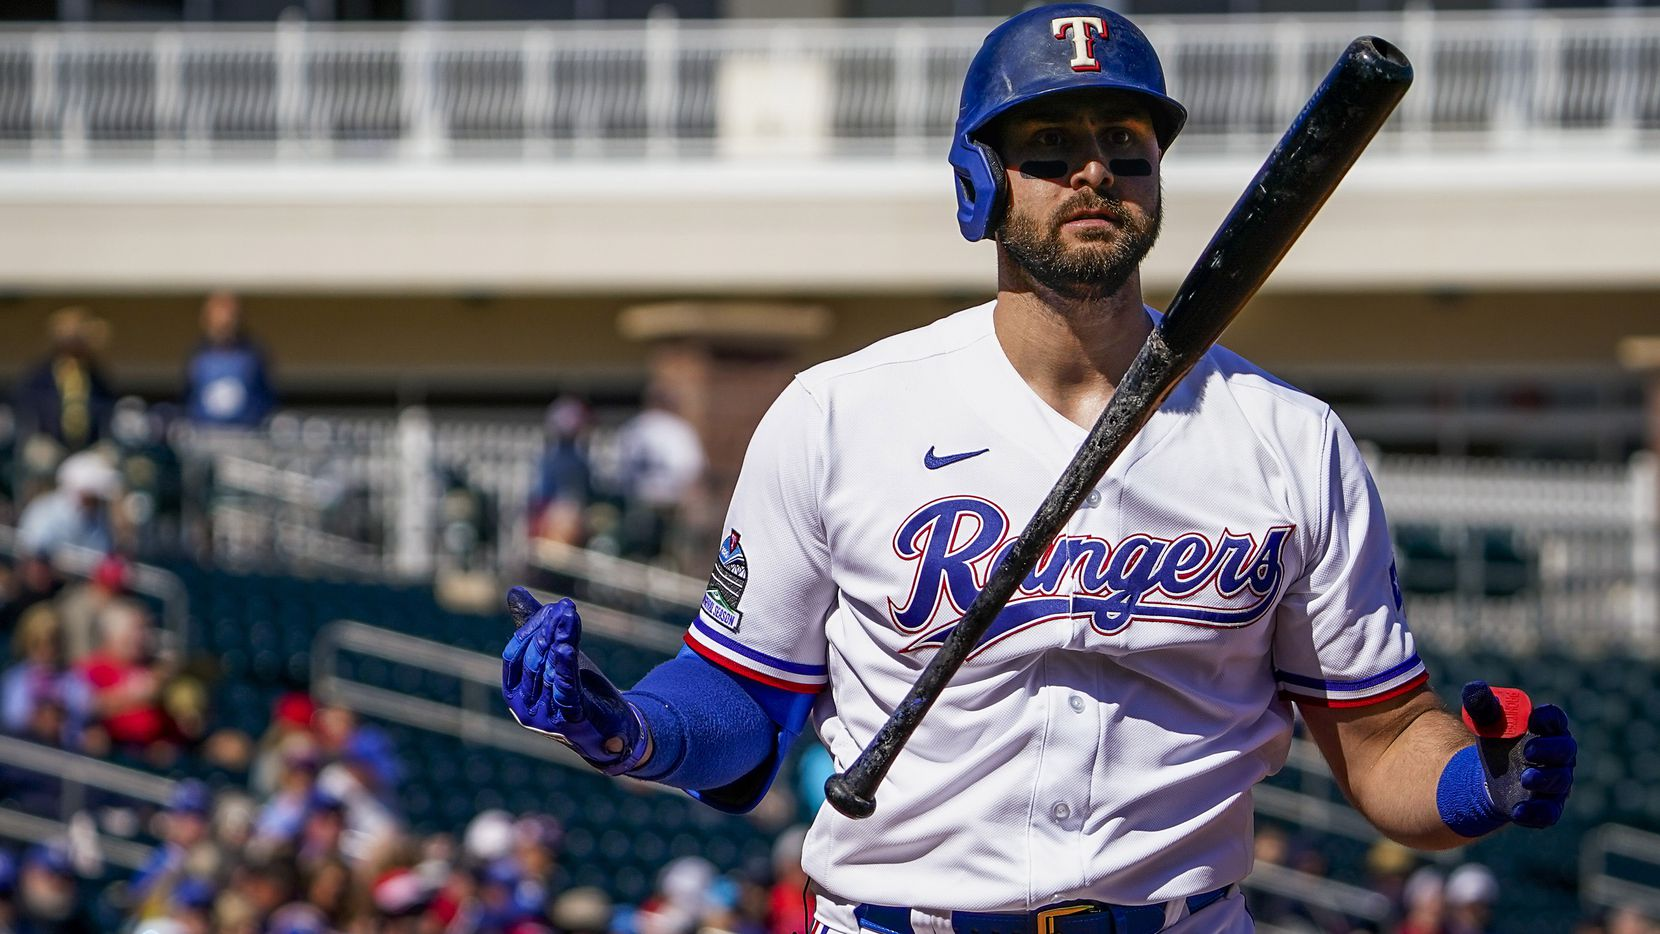 Rangers OF Joey Gallo tests positive for COVID-19